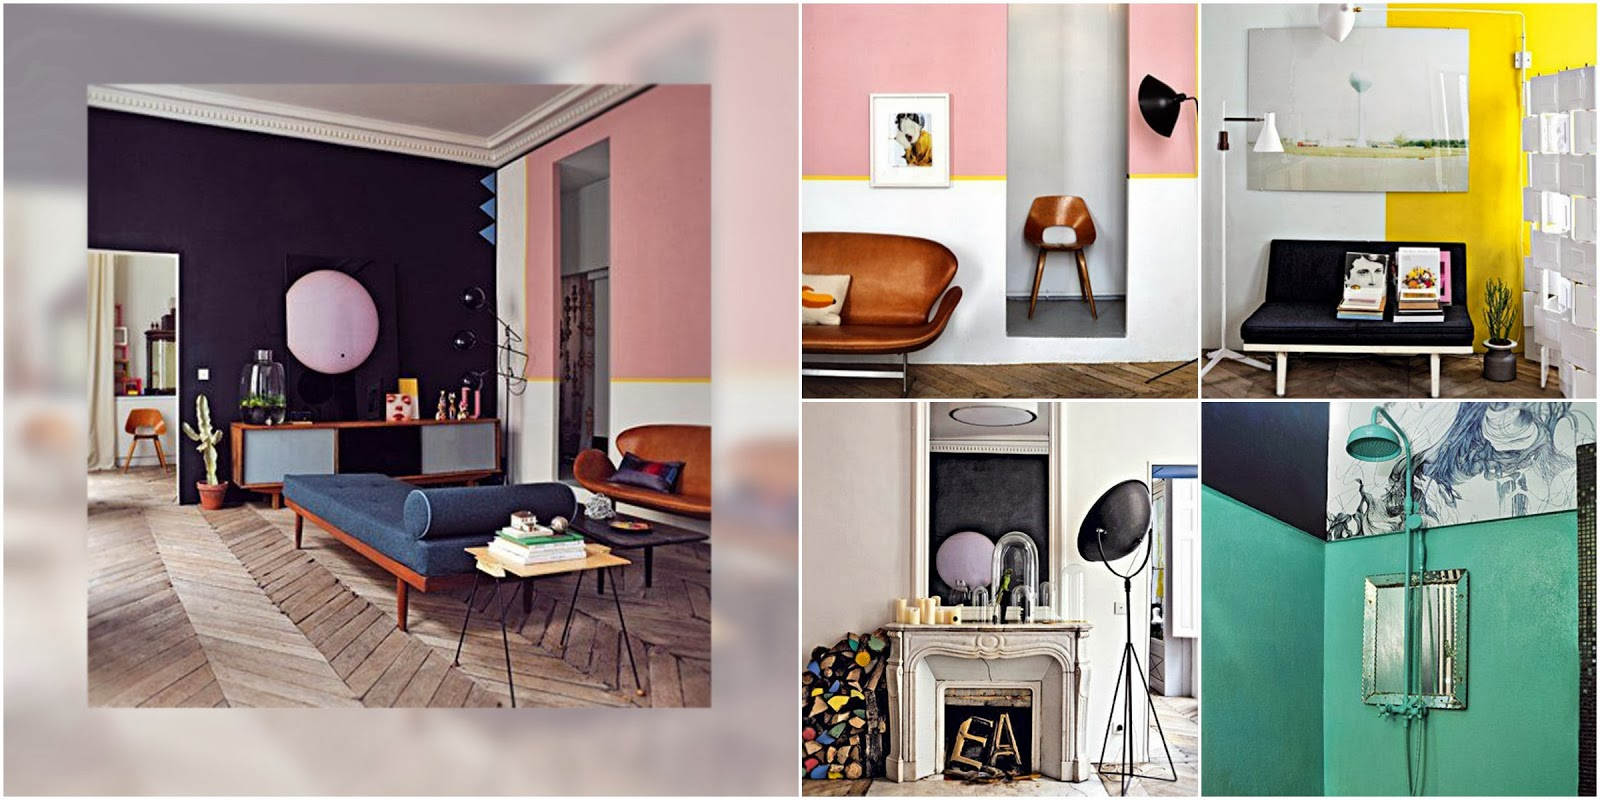 Best of 2013, apartamento años 50, house, home, tour, penthouse